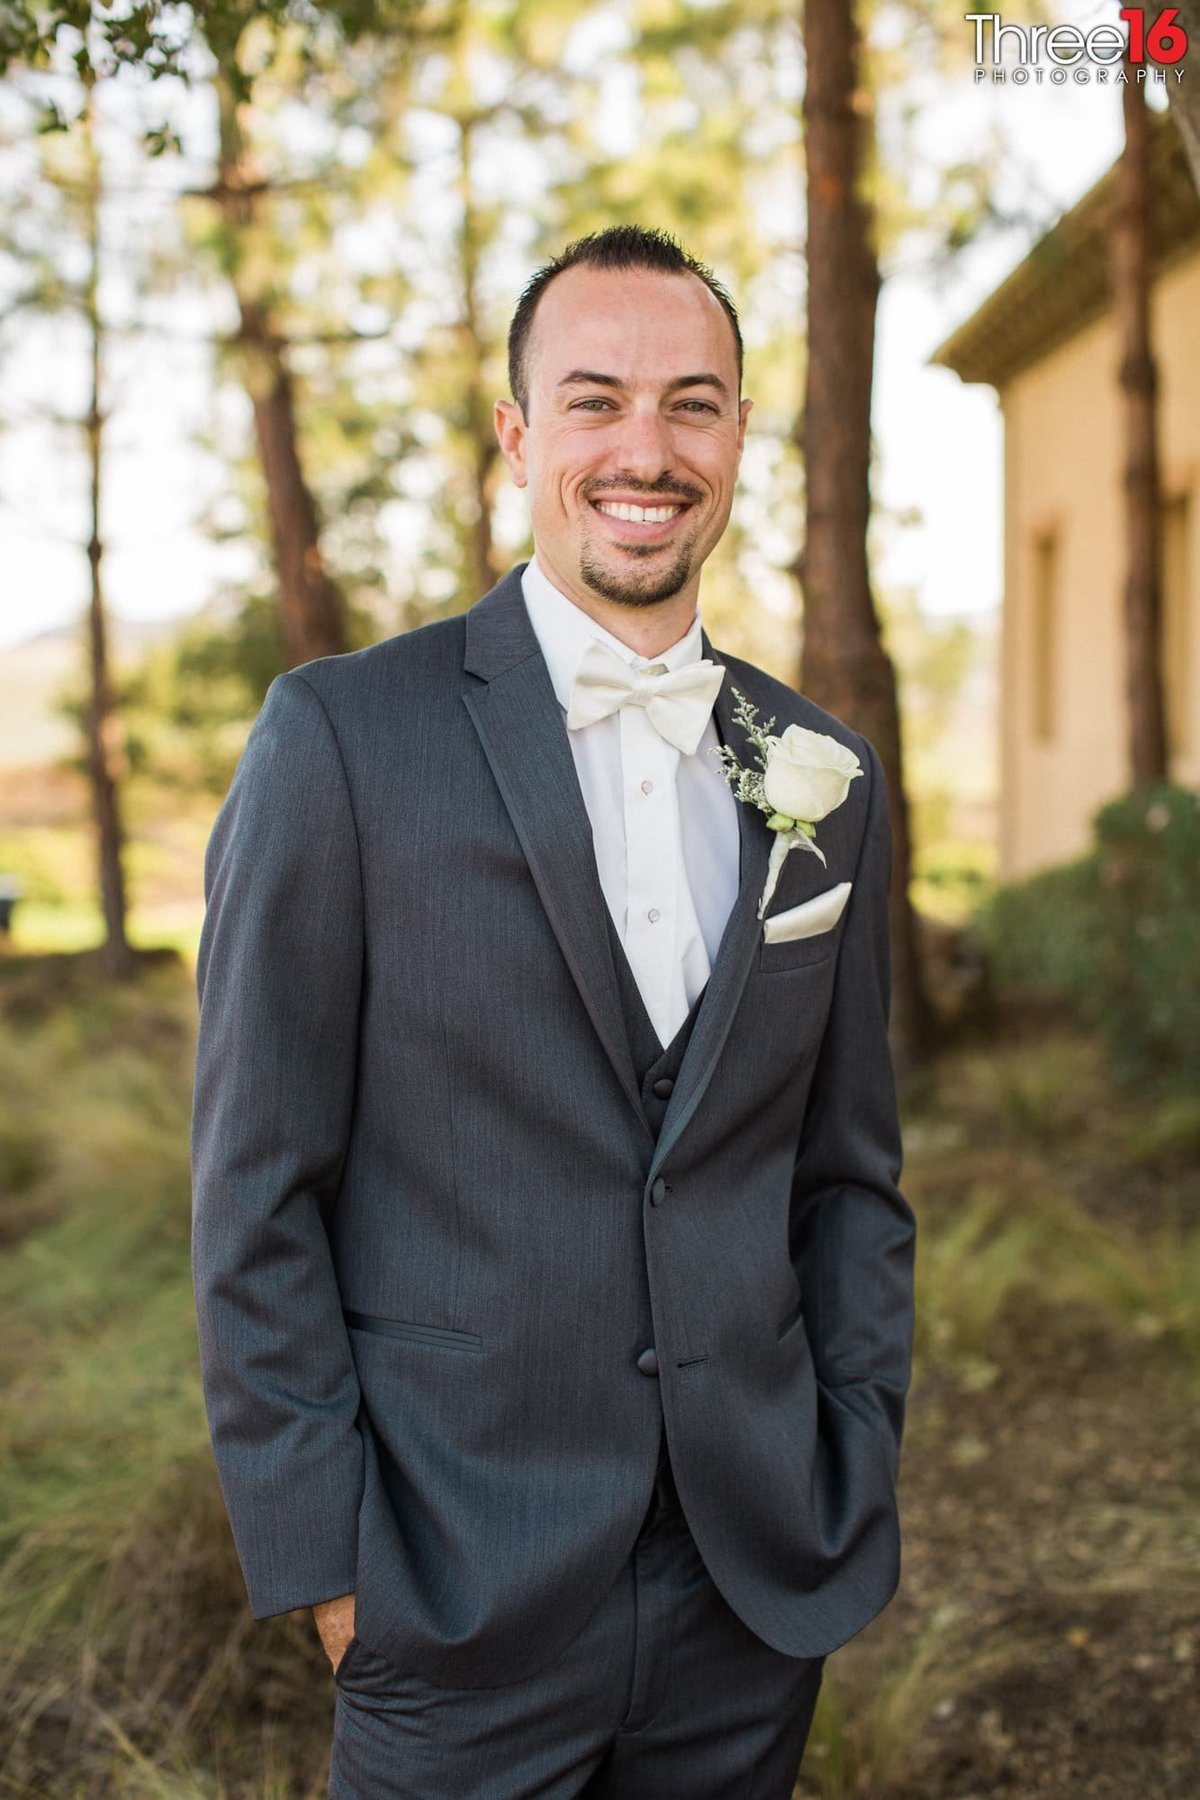 Groom posing with his hands in his pockets and big smile